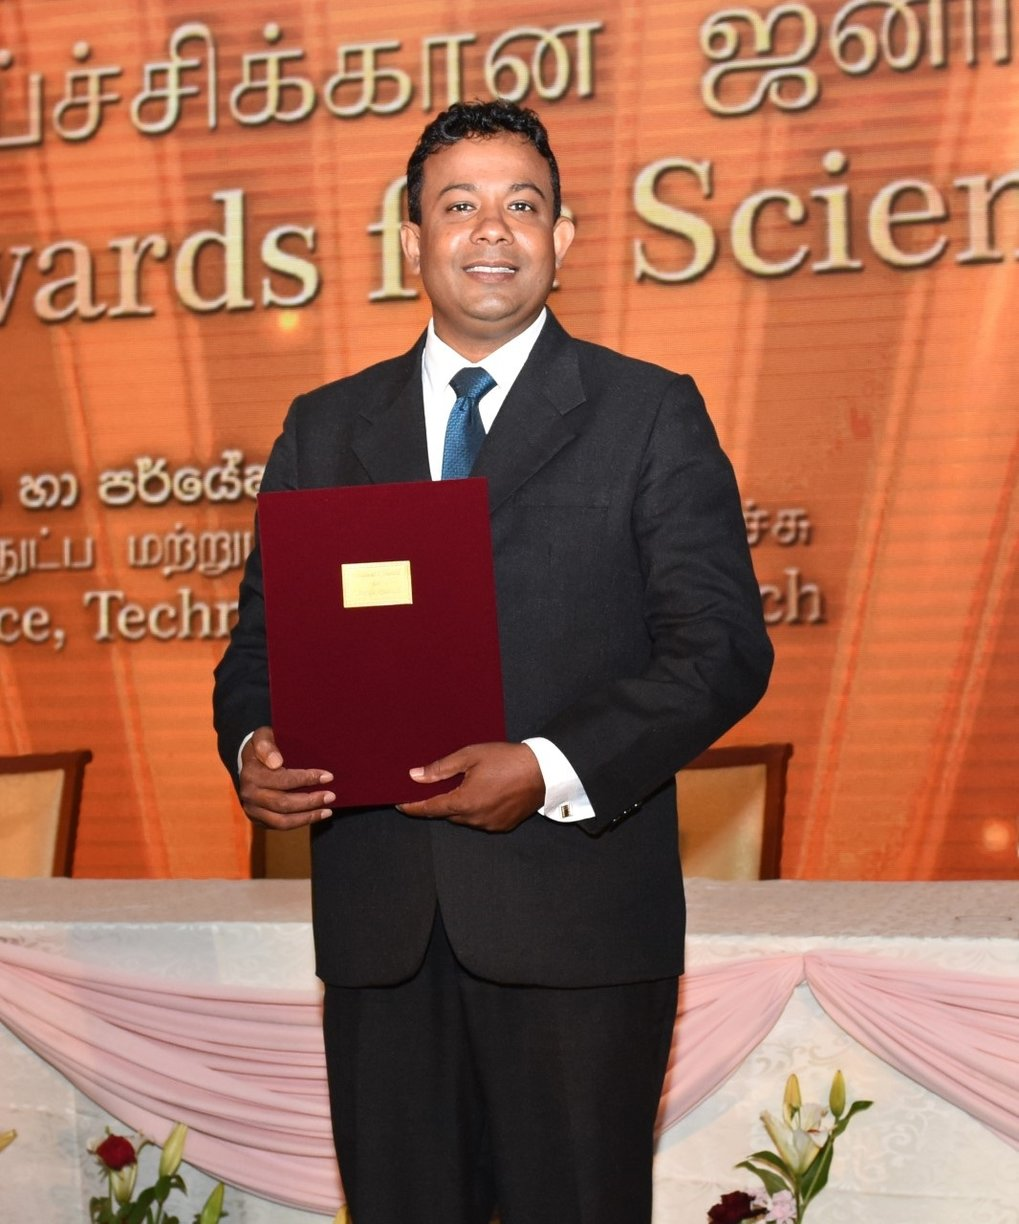 Oshan Wedage receives Sri Lankan President's Award for Scientific Research